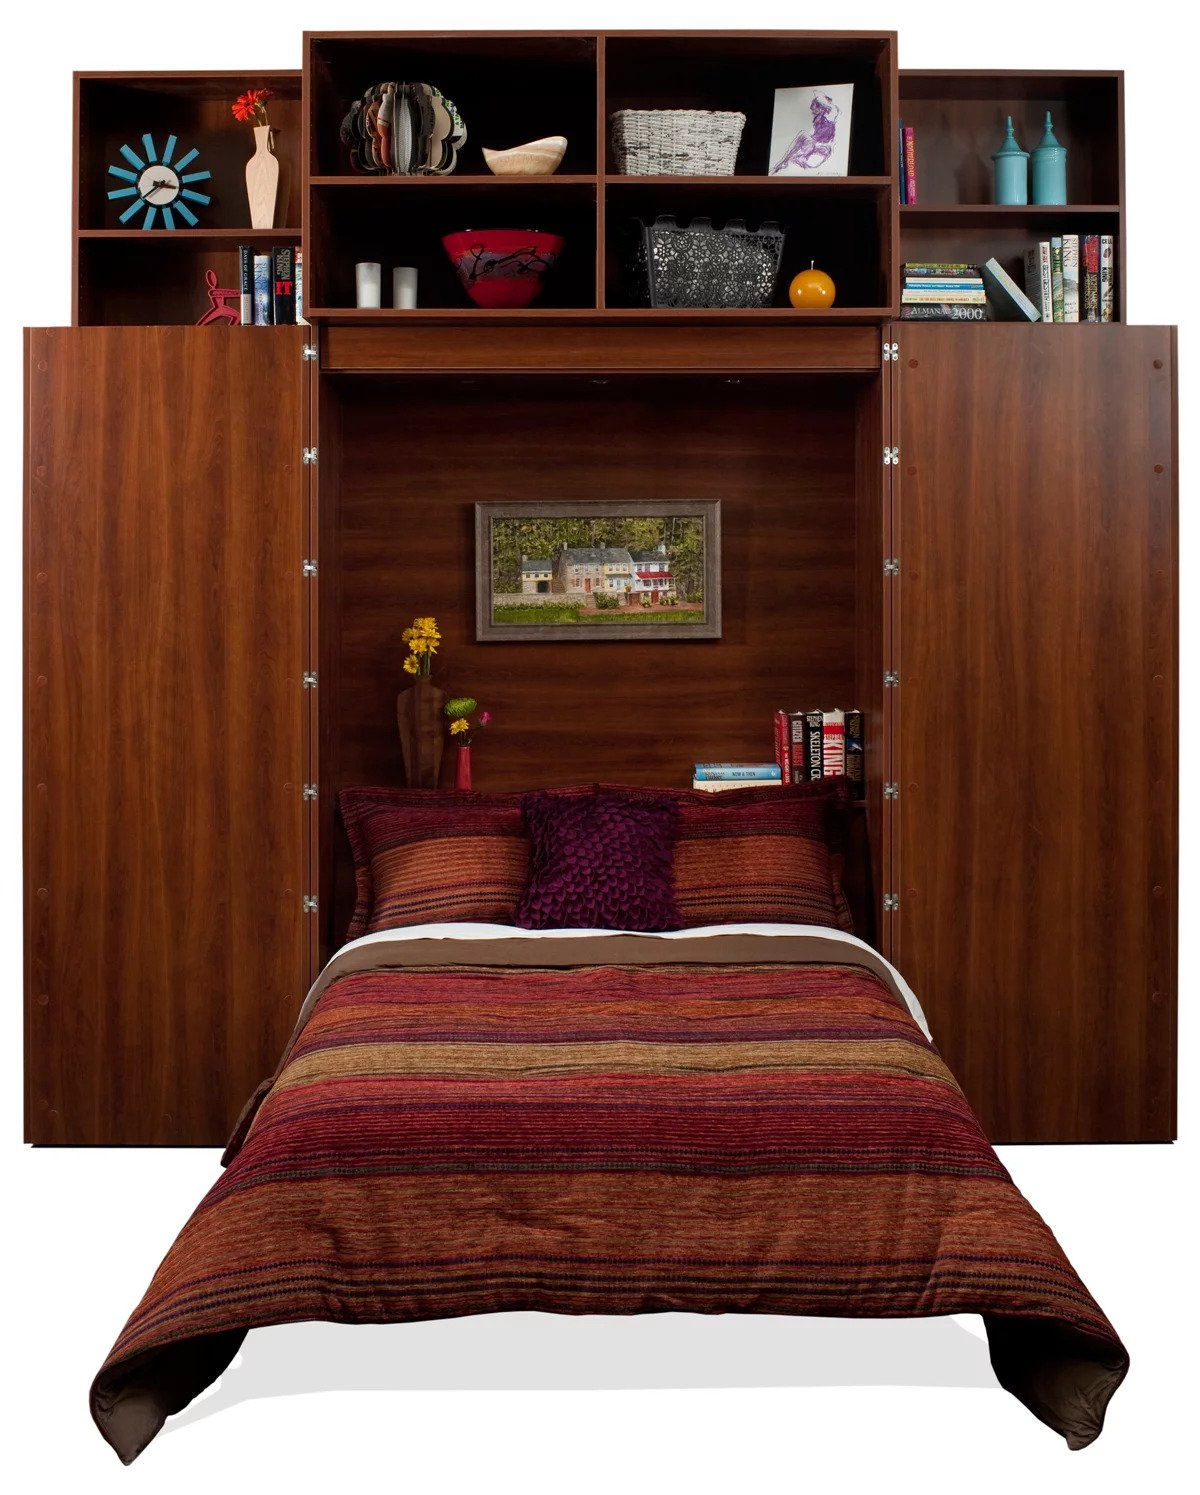 Murphy bed open inside a bookcase